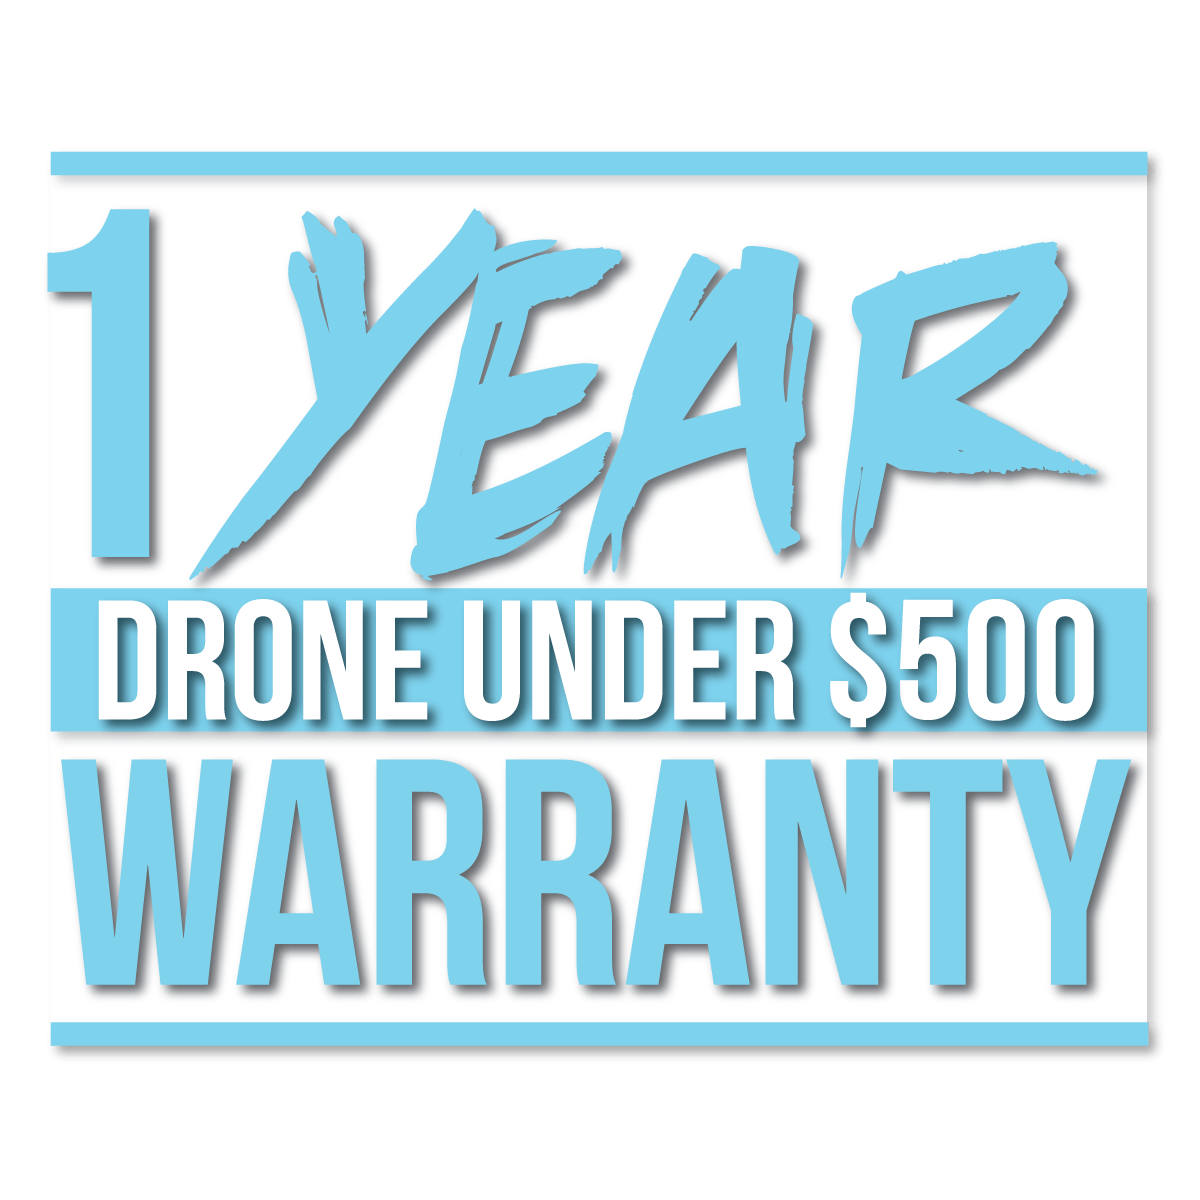 cps-warranty-verydrone-500-drone-dobby-phantom-4-Pro-3-refurbished